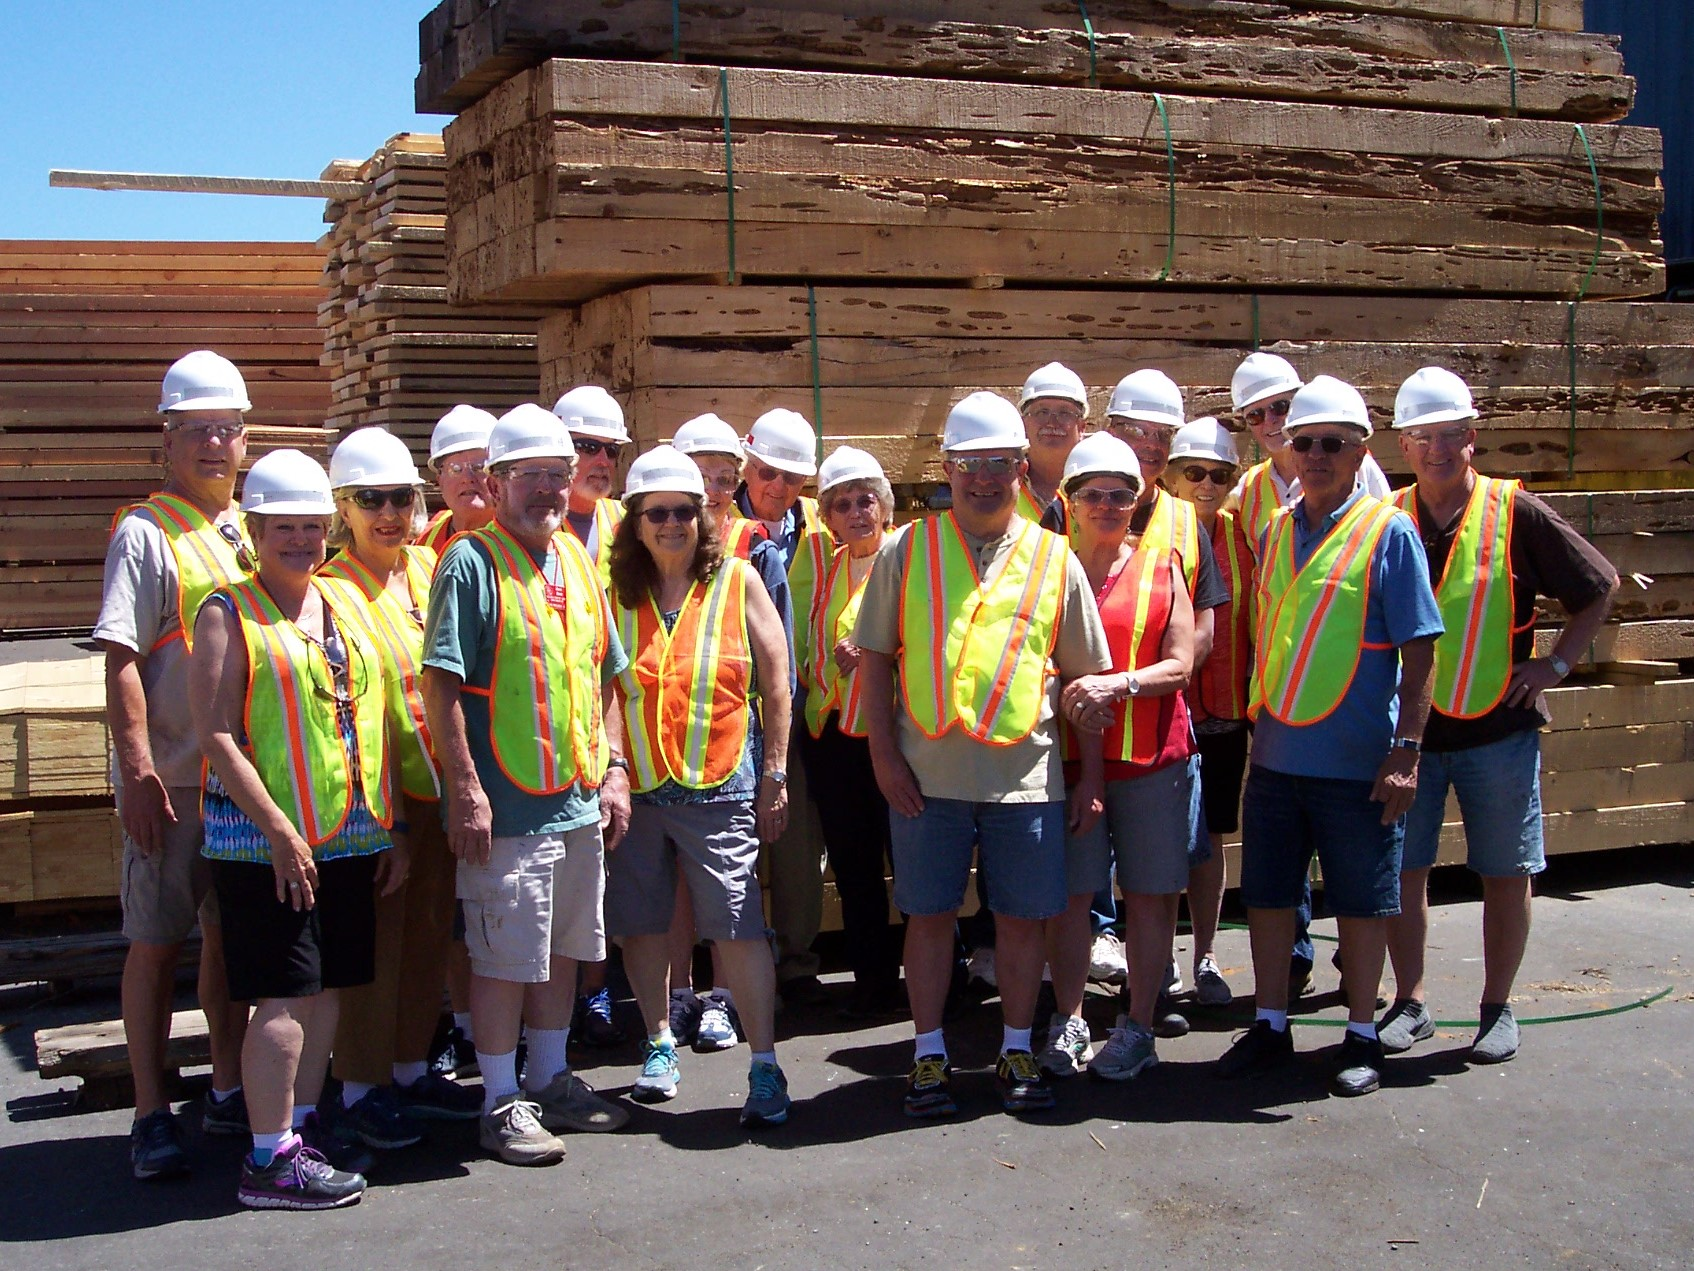 Mill Tour in Quincy, Ca. June 15th, 2019